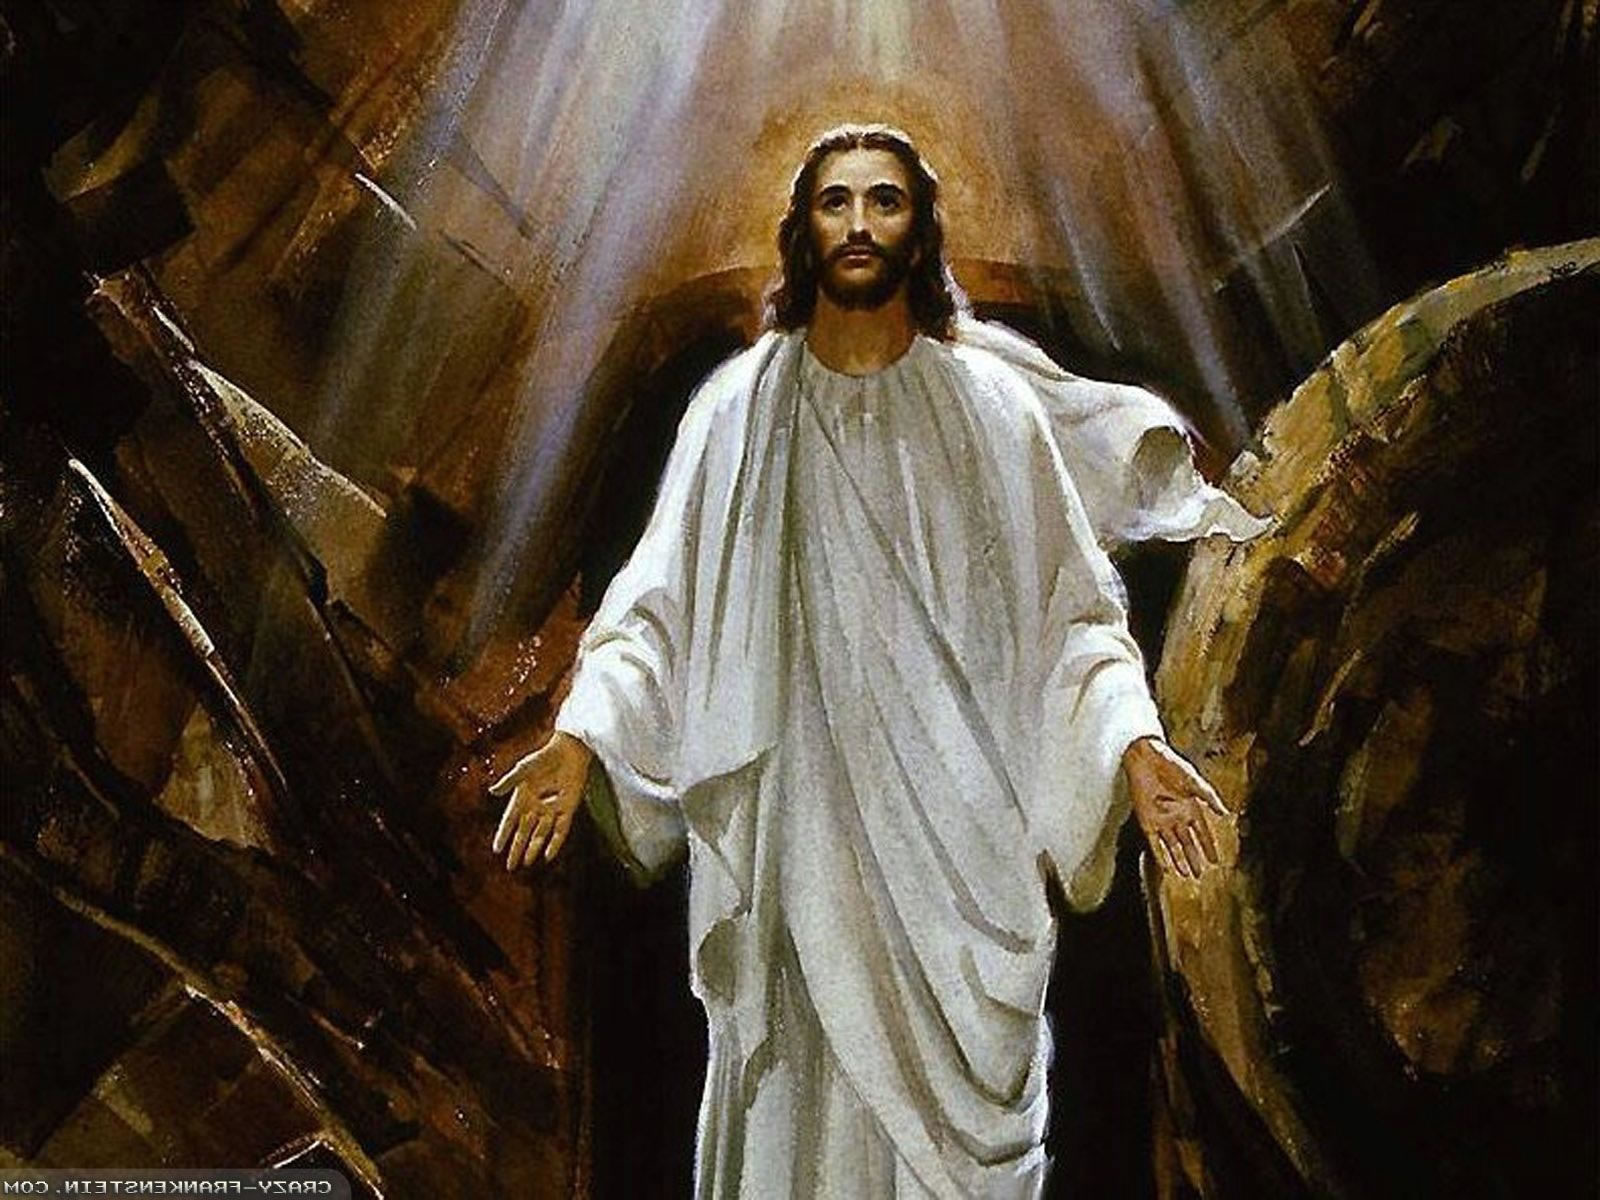 Jesus Resurrection Wallpaper Jesus resurrec 1600x1200